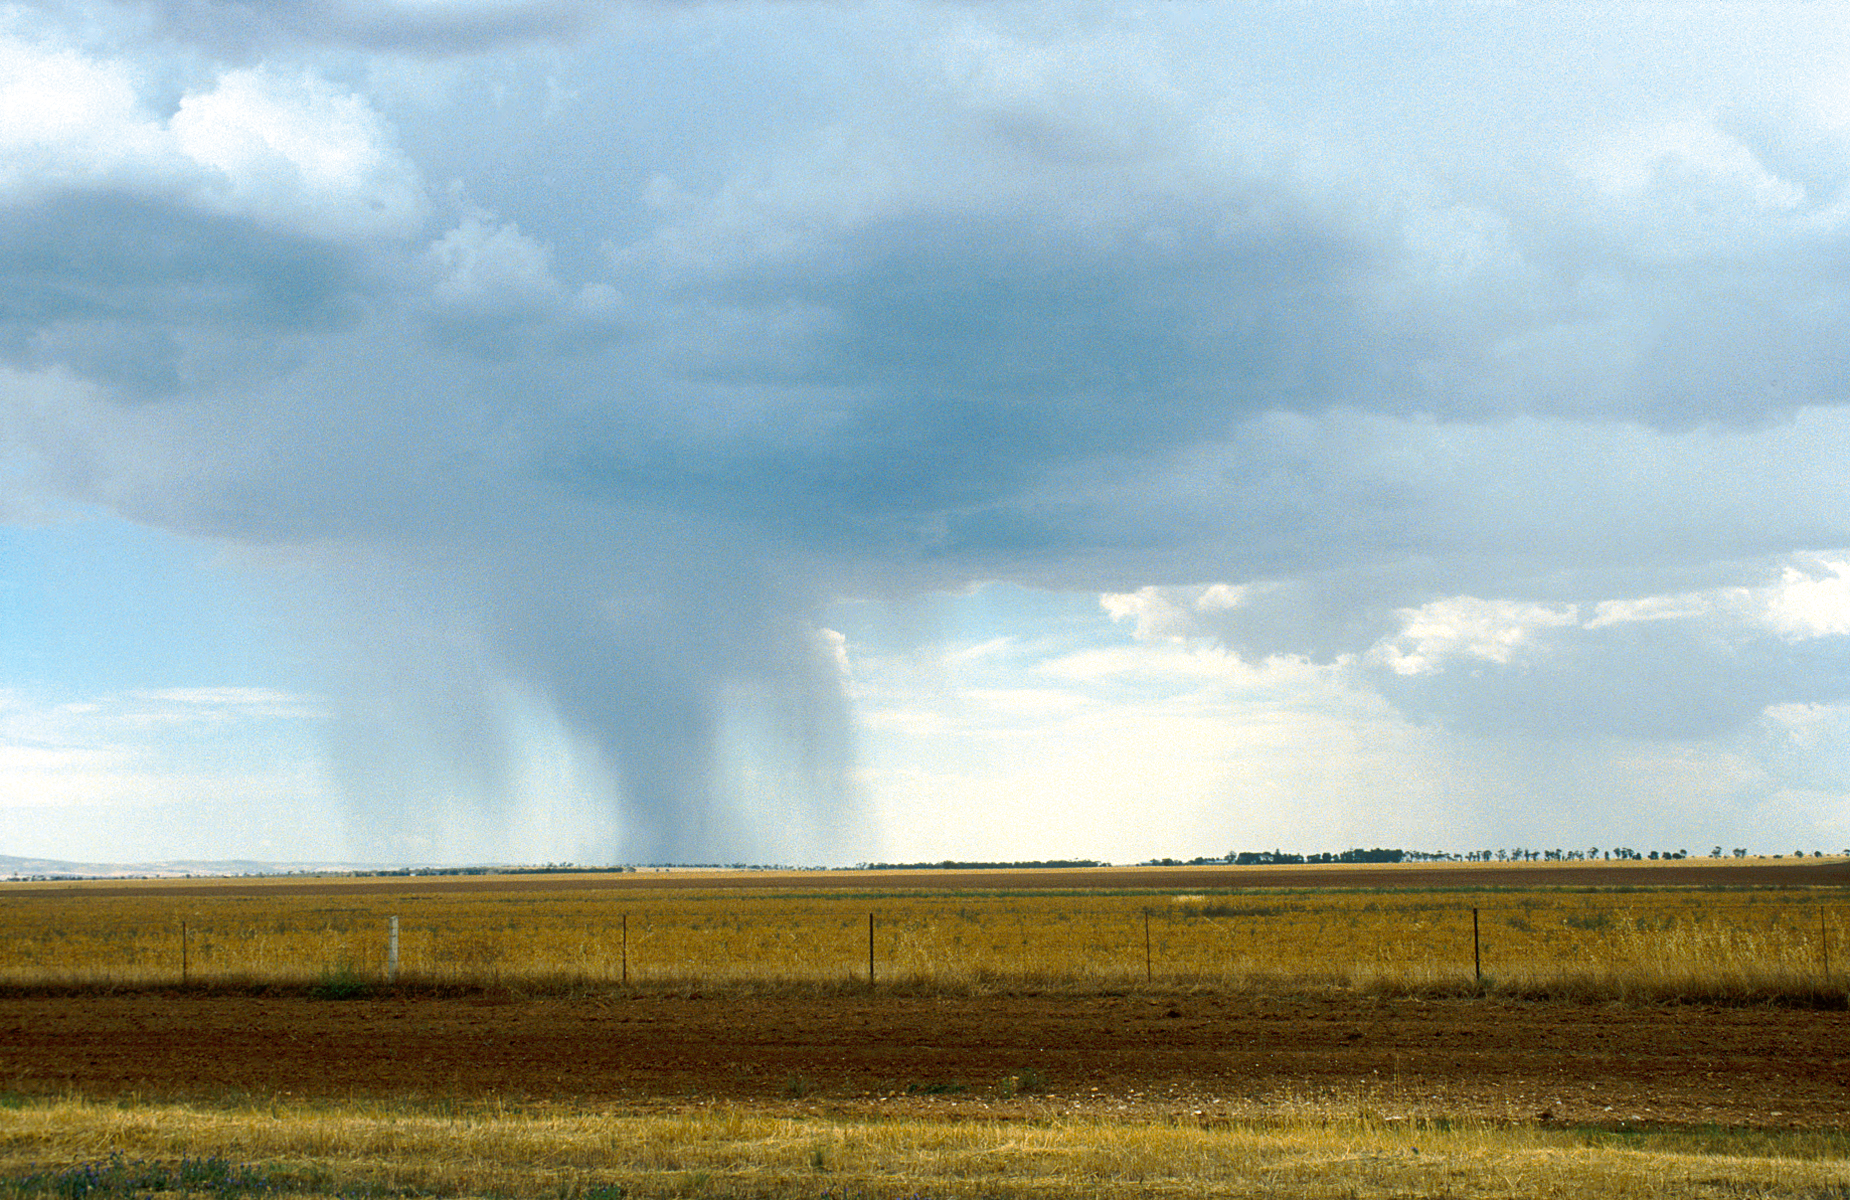 Rainfall over a paddock